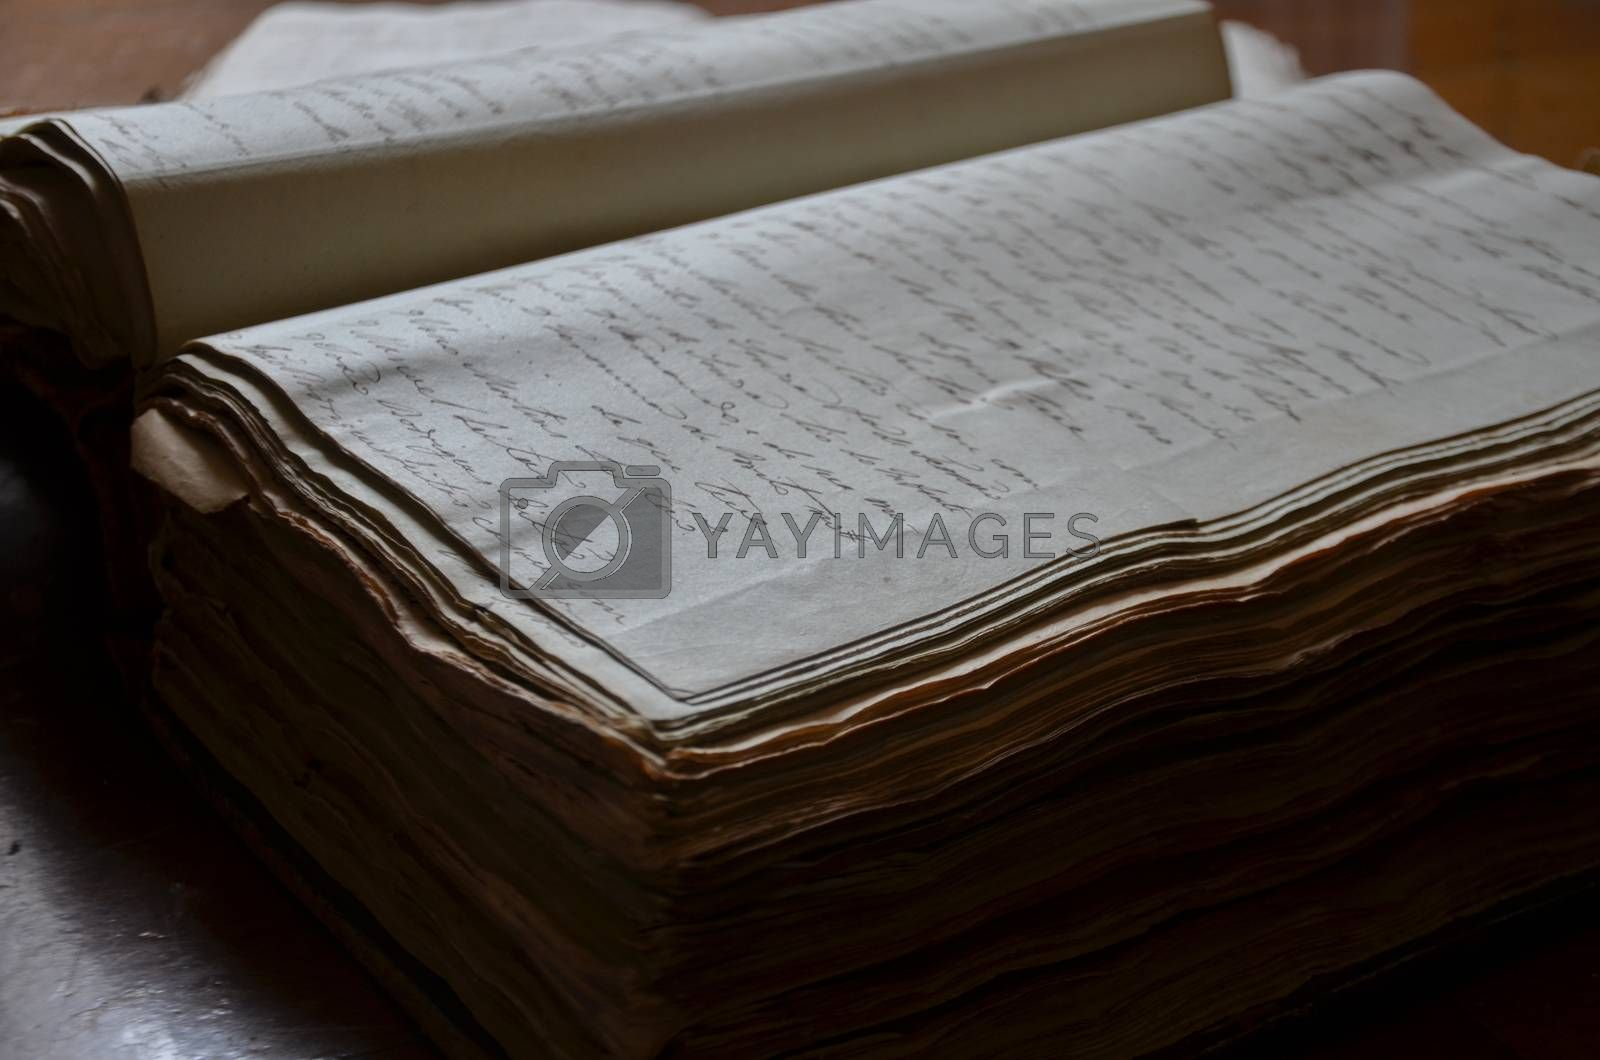 Royalty free image of old book close up by afonsoasneves